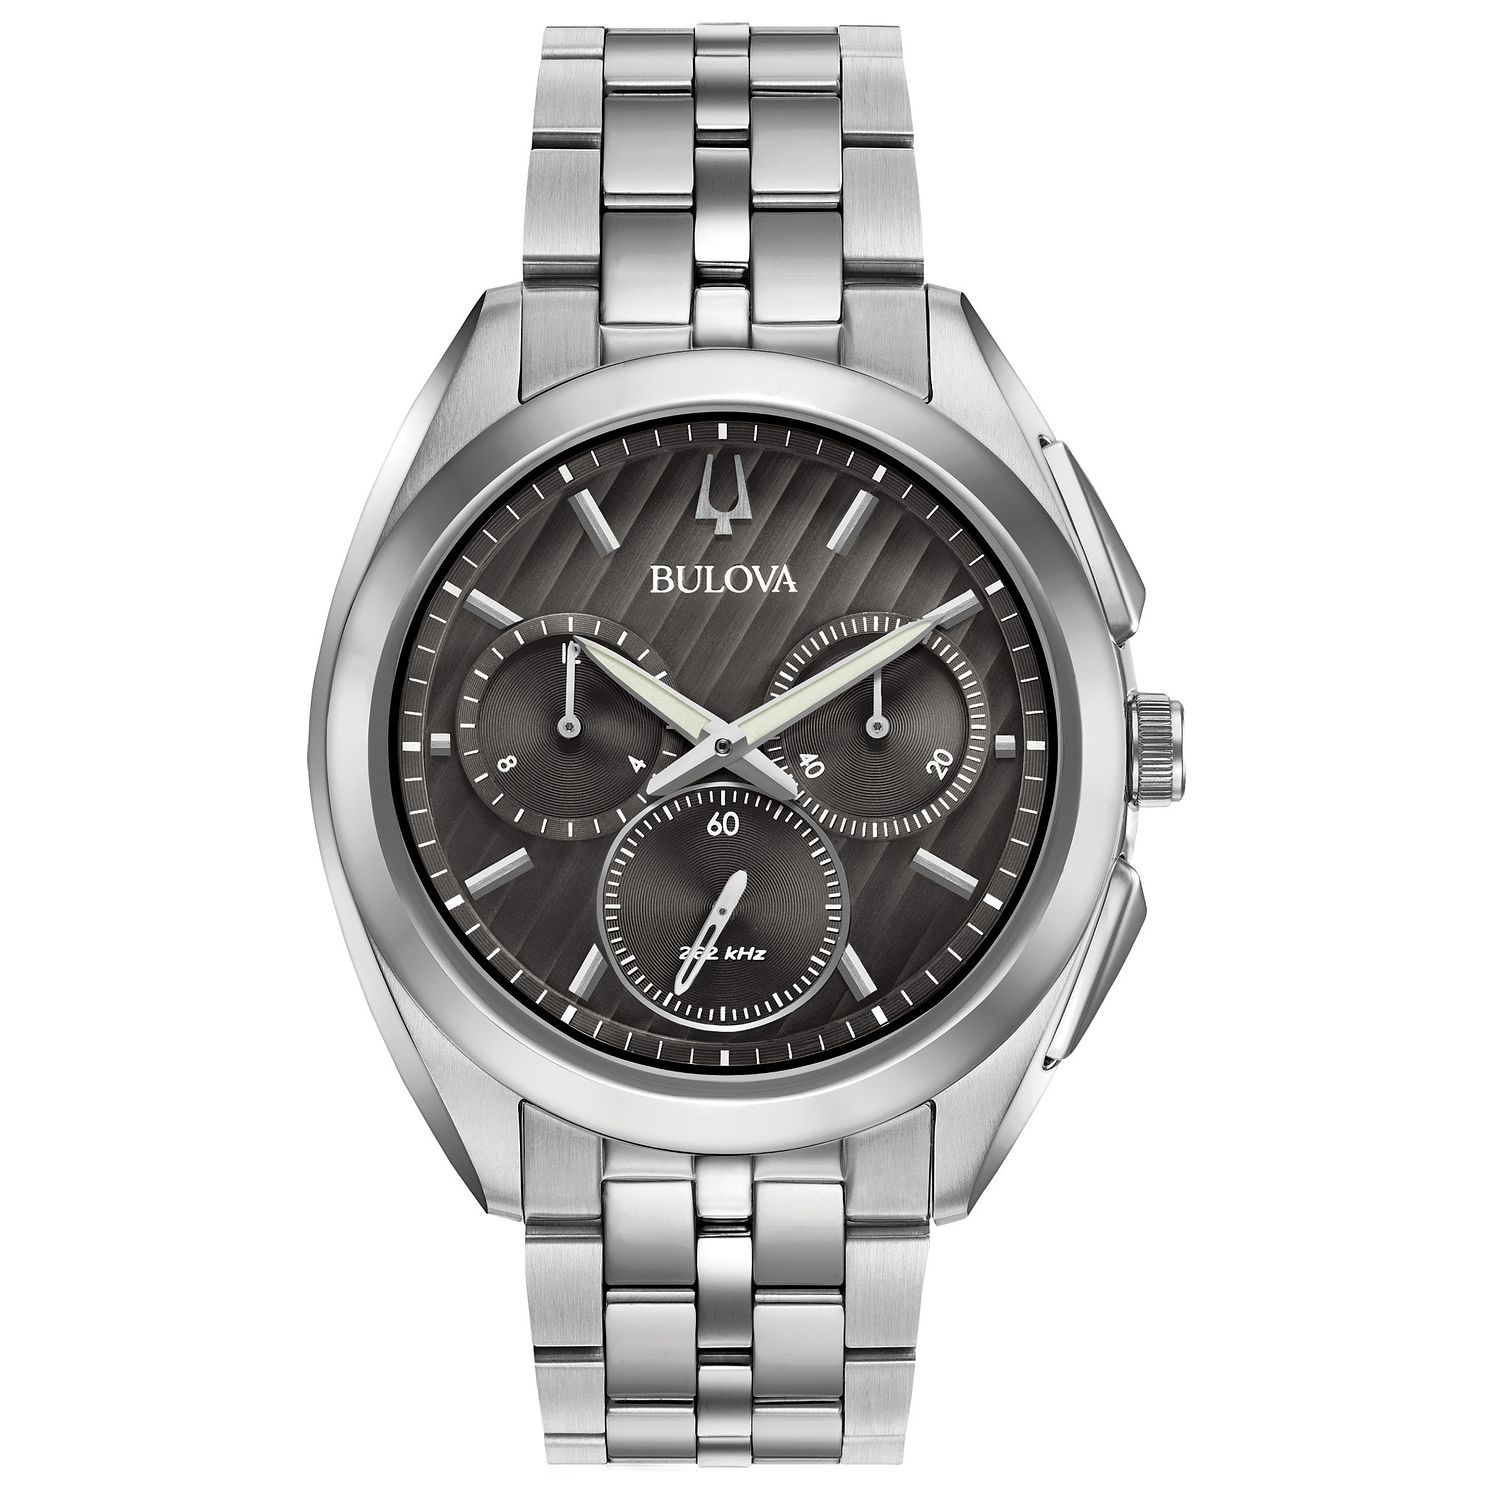 Bulova CURV Chronograph Men's Stainless Steel Bracelet Watch - Product number 5235723